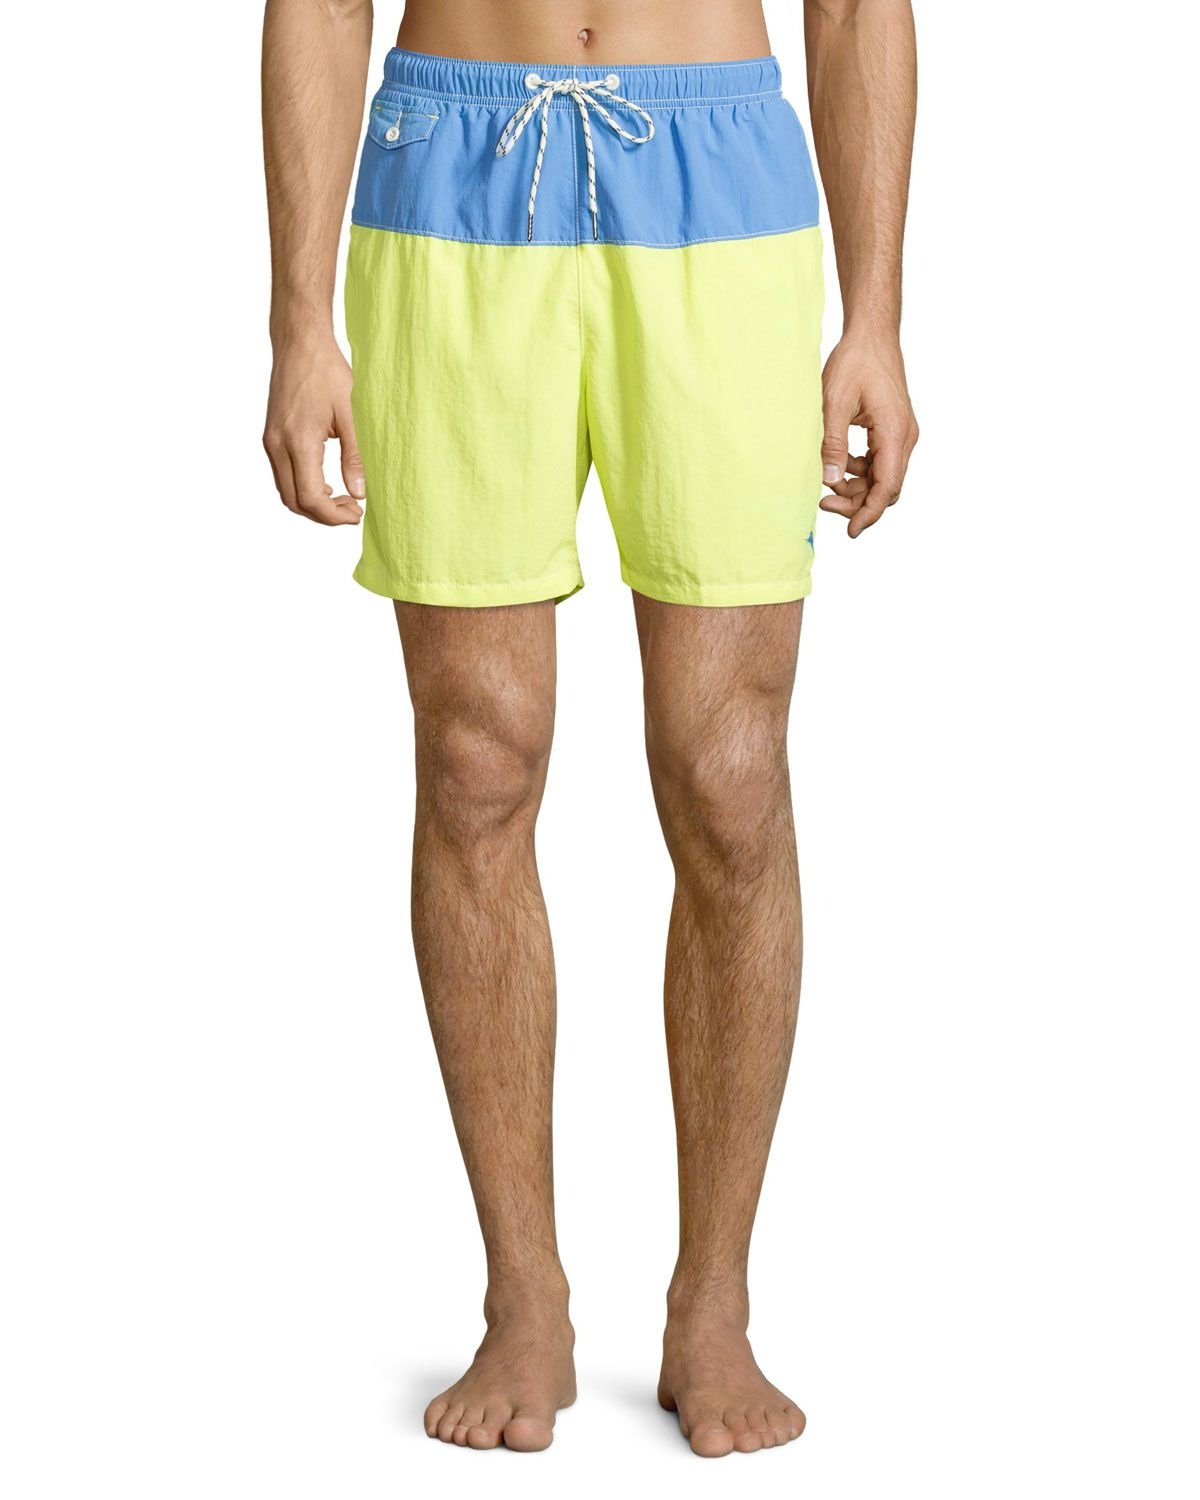 c1f4d4e282 Moncler Geo-Print Swim Trunks | *Neiman Marcus* | Swim trunks, Mens  designer swimwear, Swim shorts